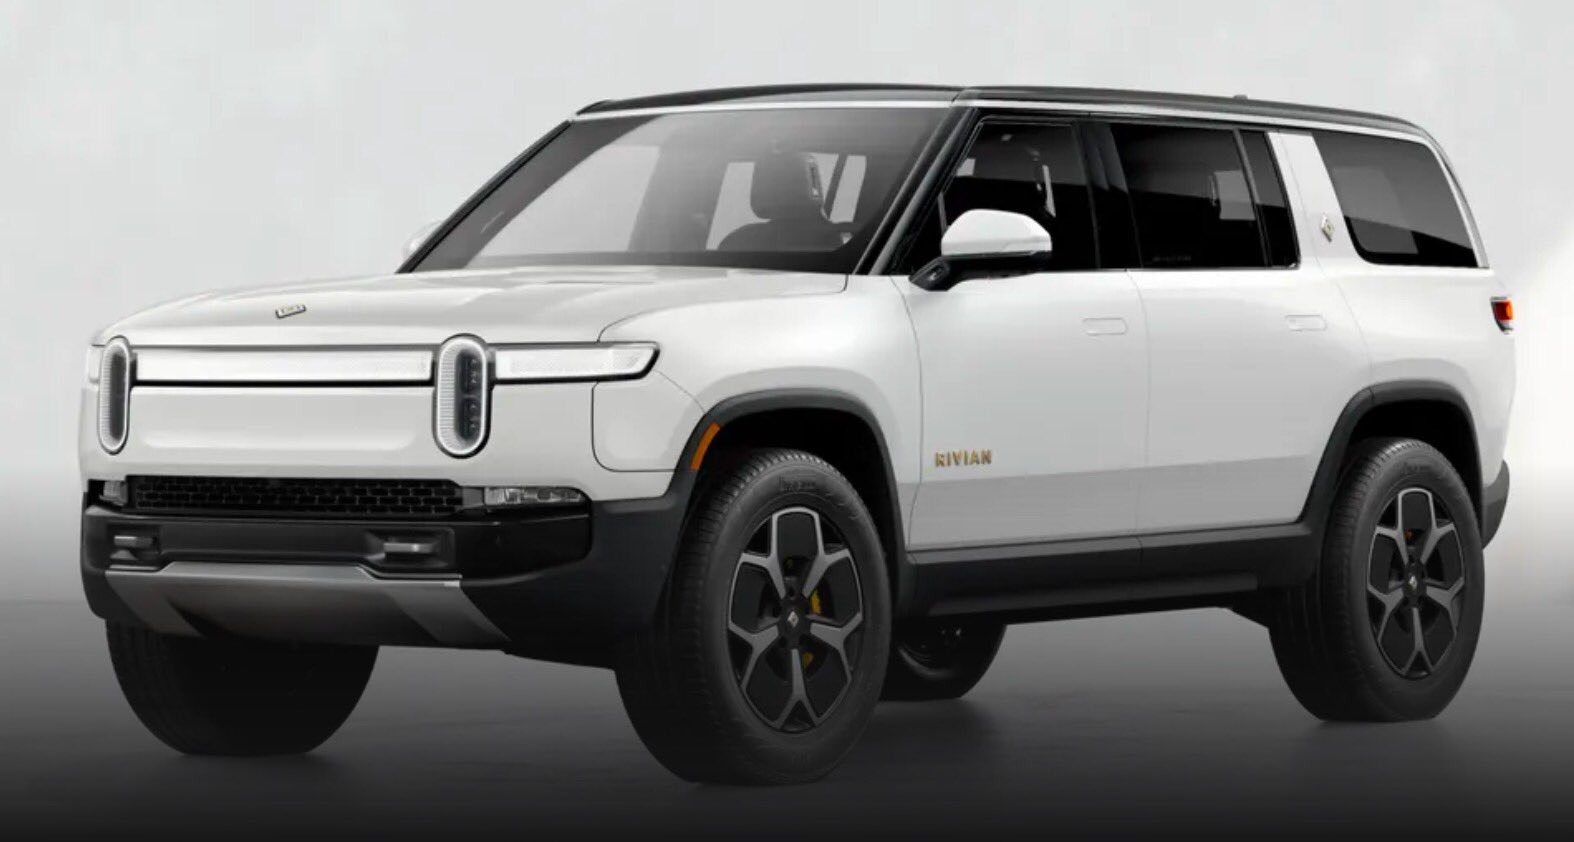 @deseventral Great choice! I pre-ordered a @rivian R1S. Spring 2022 delivery🤞 https://t.co/kZT49vMXdU